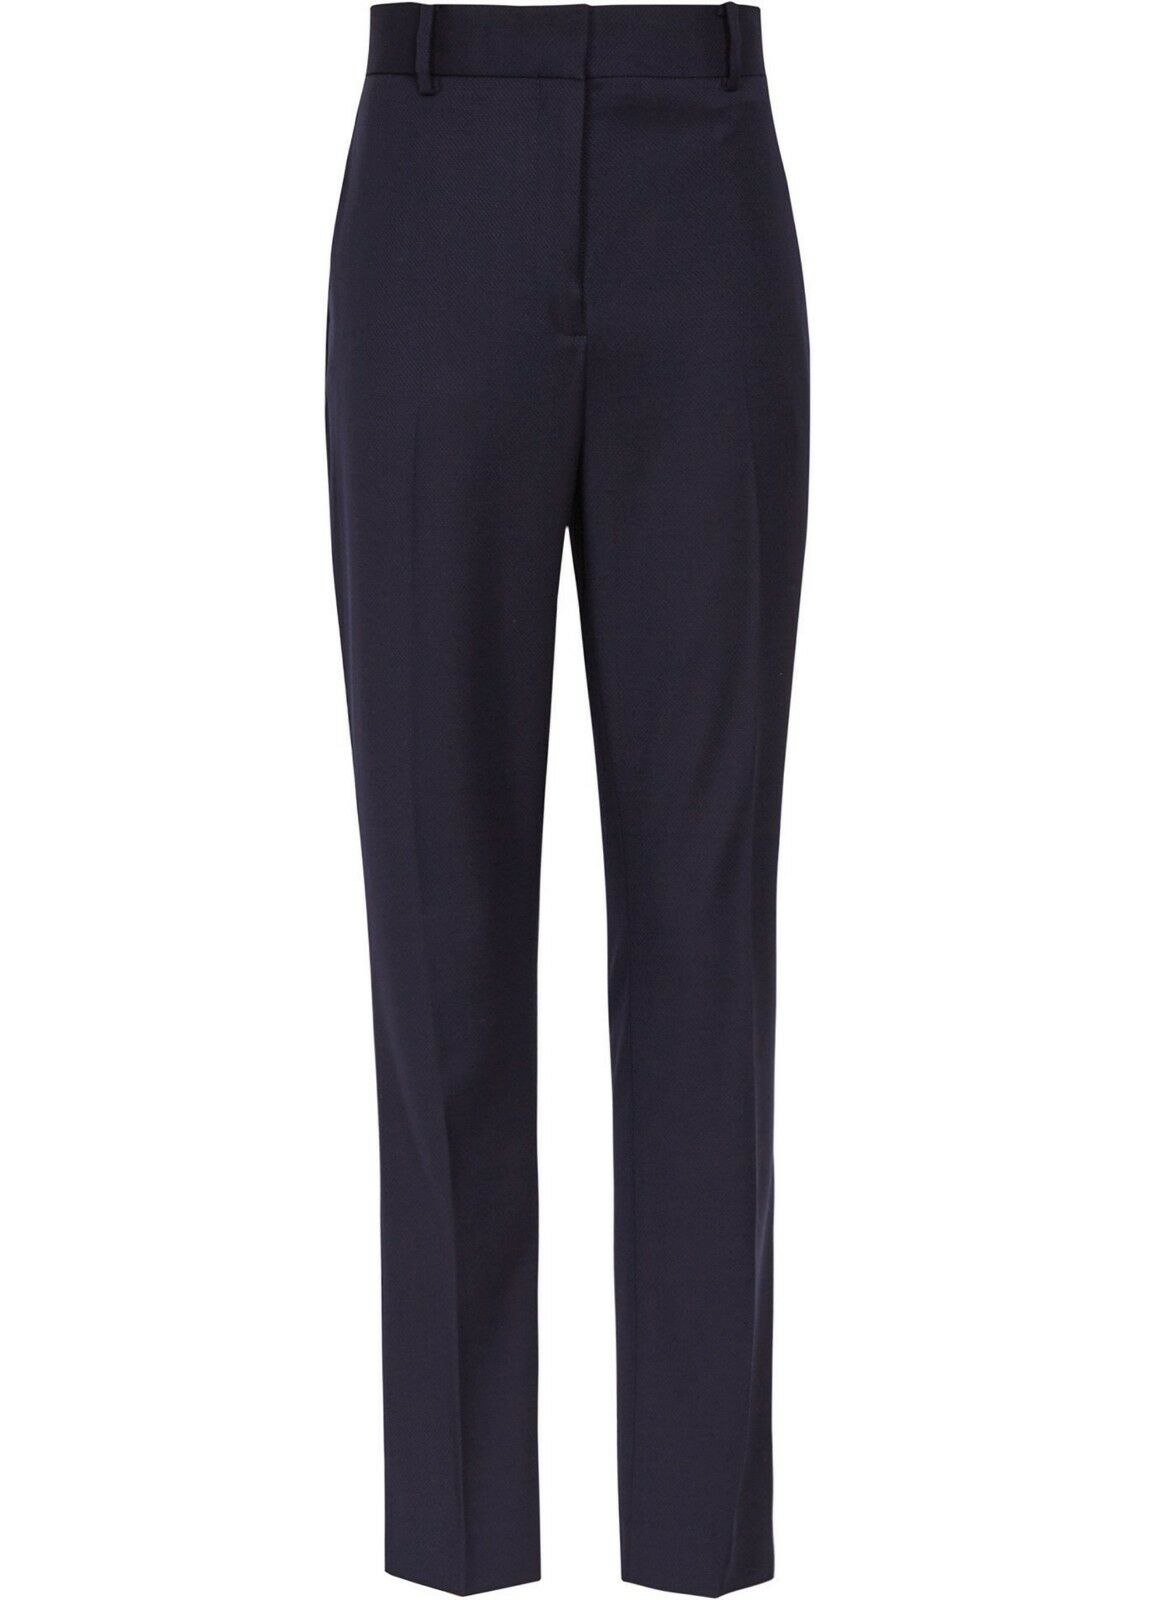 REISS Slim Fit Tailored Trousers - Navy - Brand New With Tags